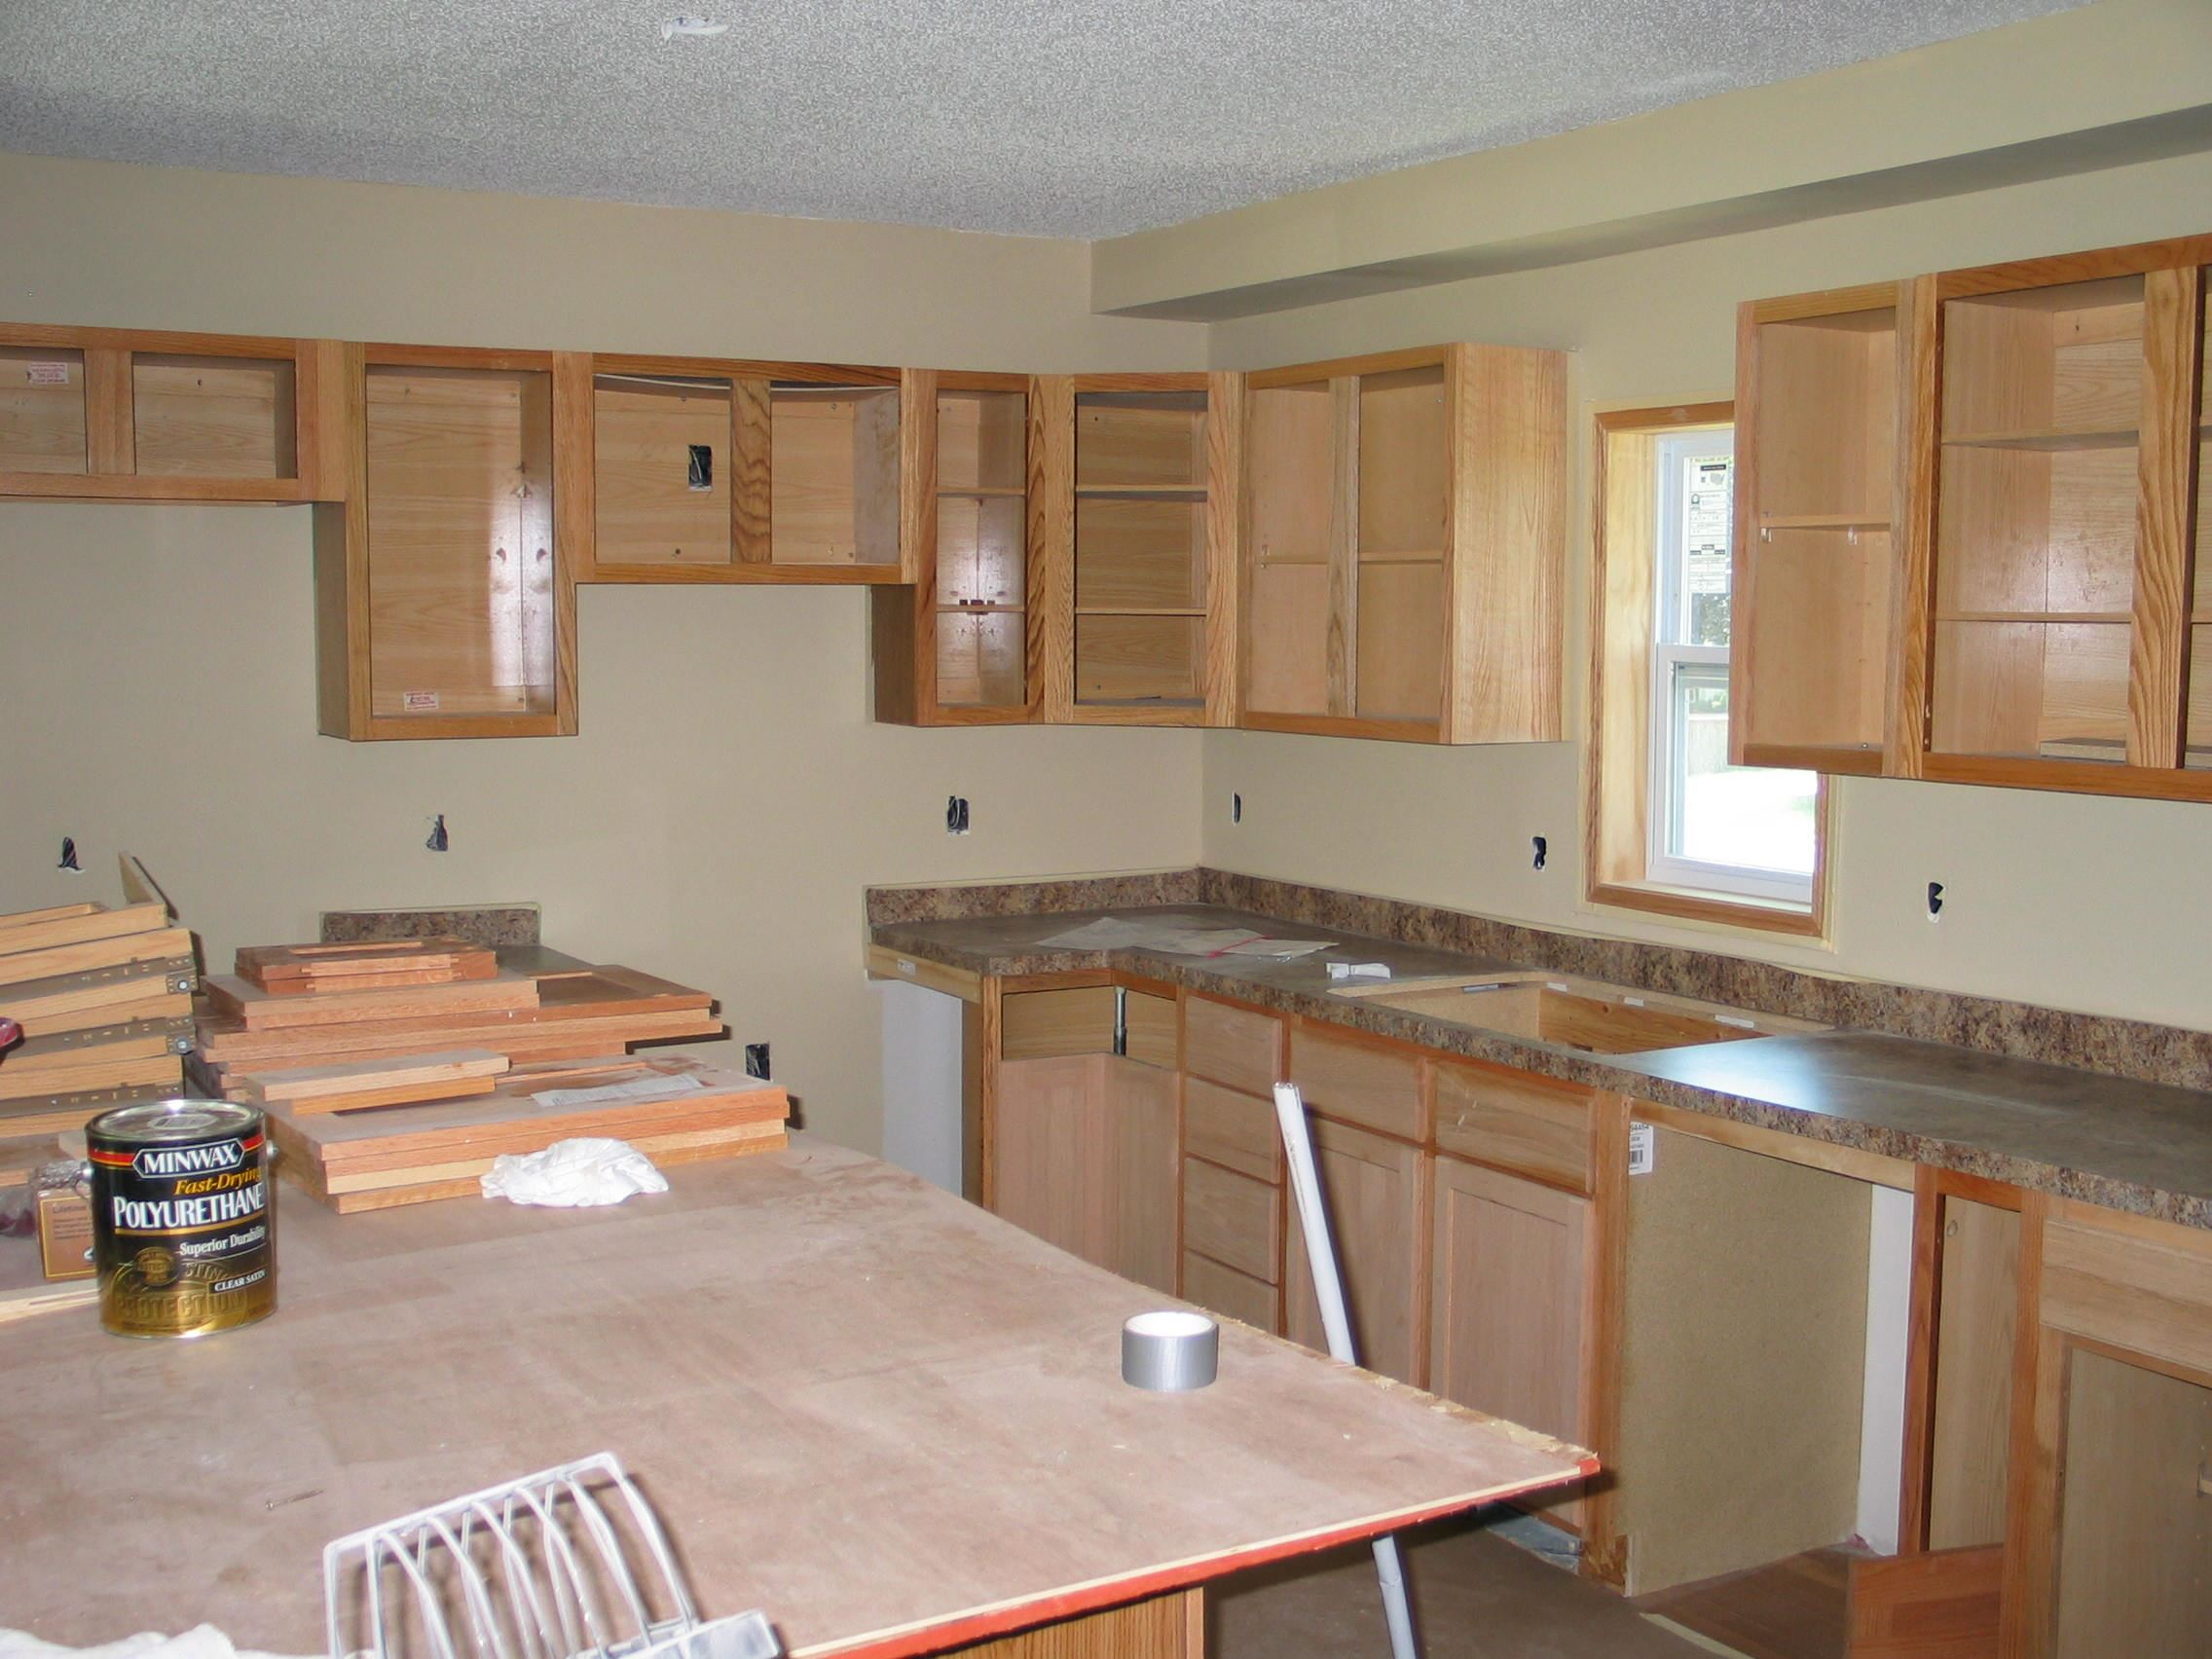 Home Improvements and Loans - Fridley, MN - Official Website